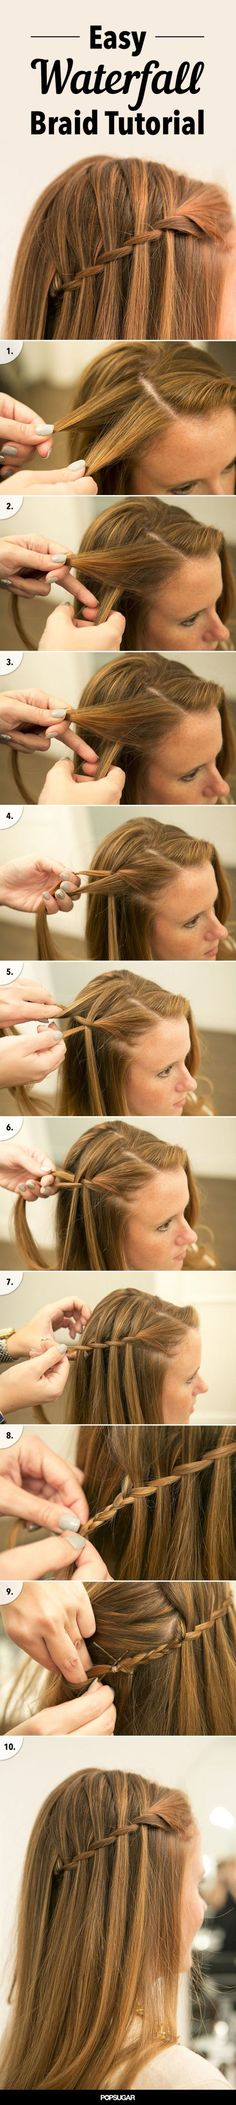 How to #DIY a waterfall braid. #waterfallbraid #braid by gloriaU